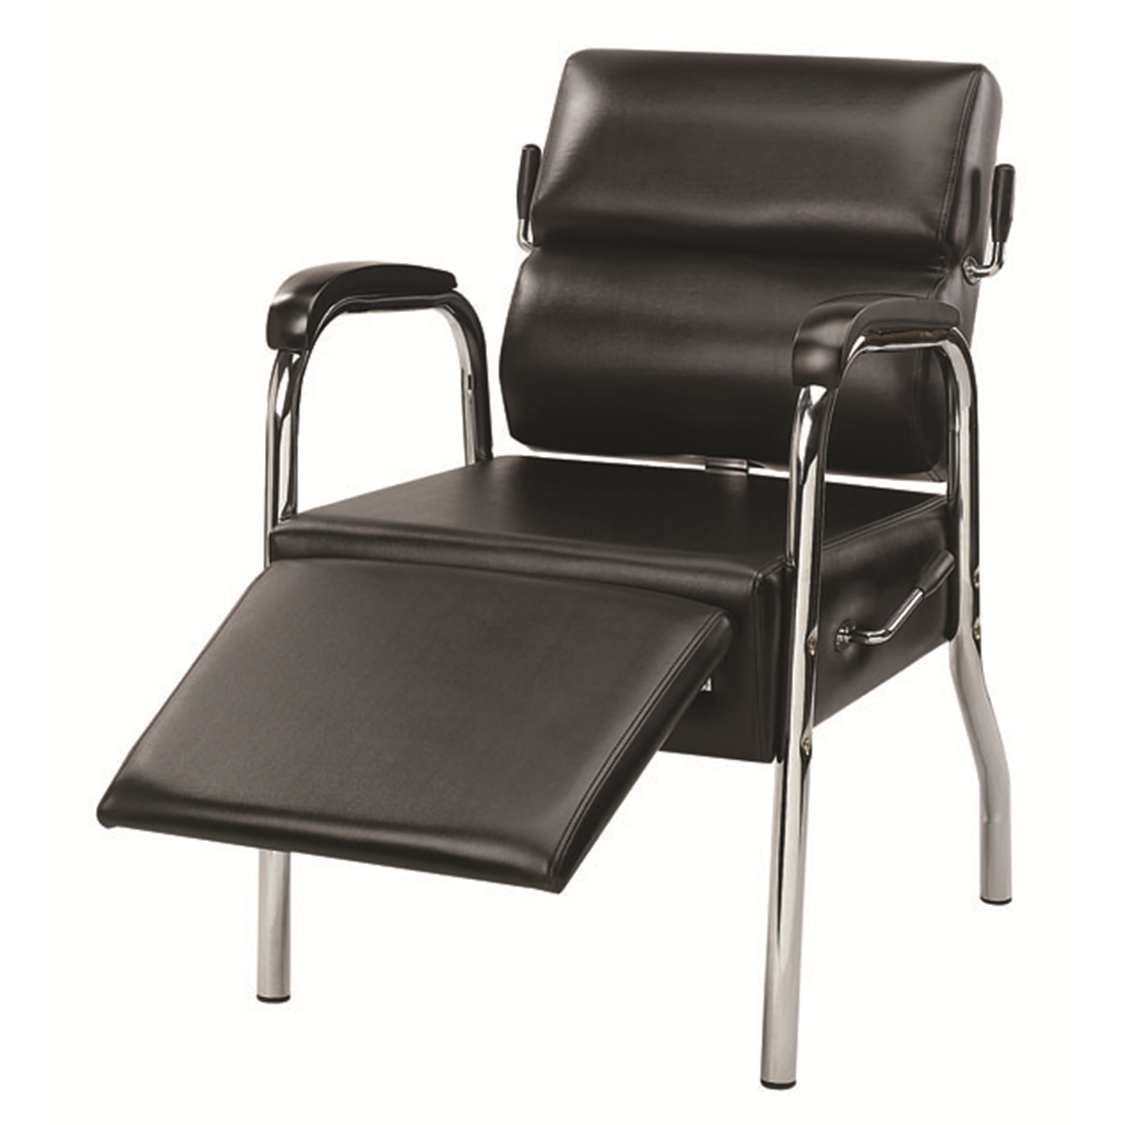 Tracy Shampoo Chair - Garfield Commercial Enterprises Salon Equipment Spa Furniture Barber Chair Luxury